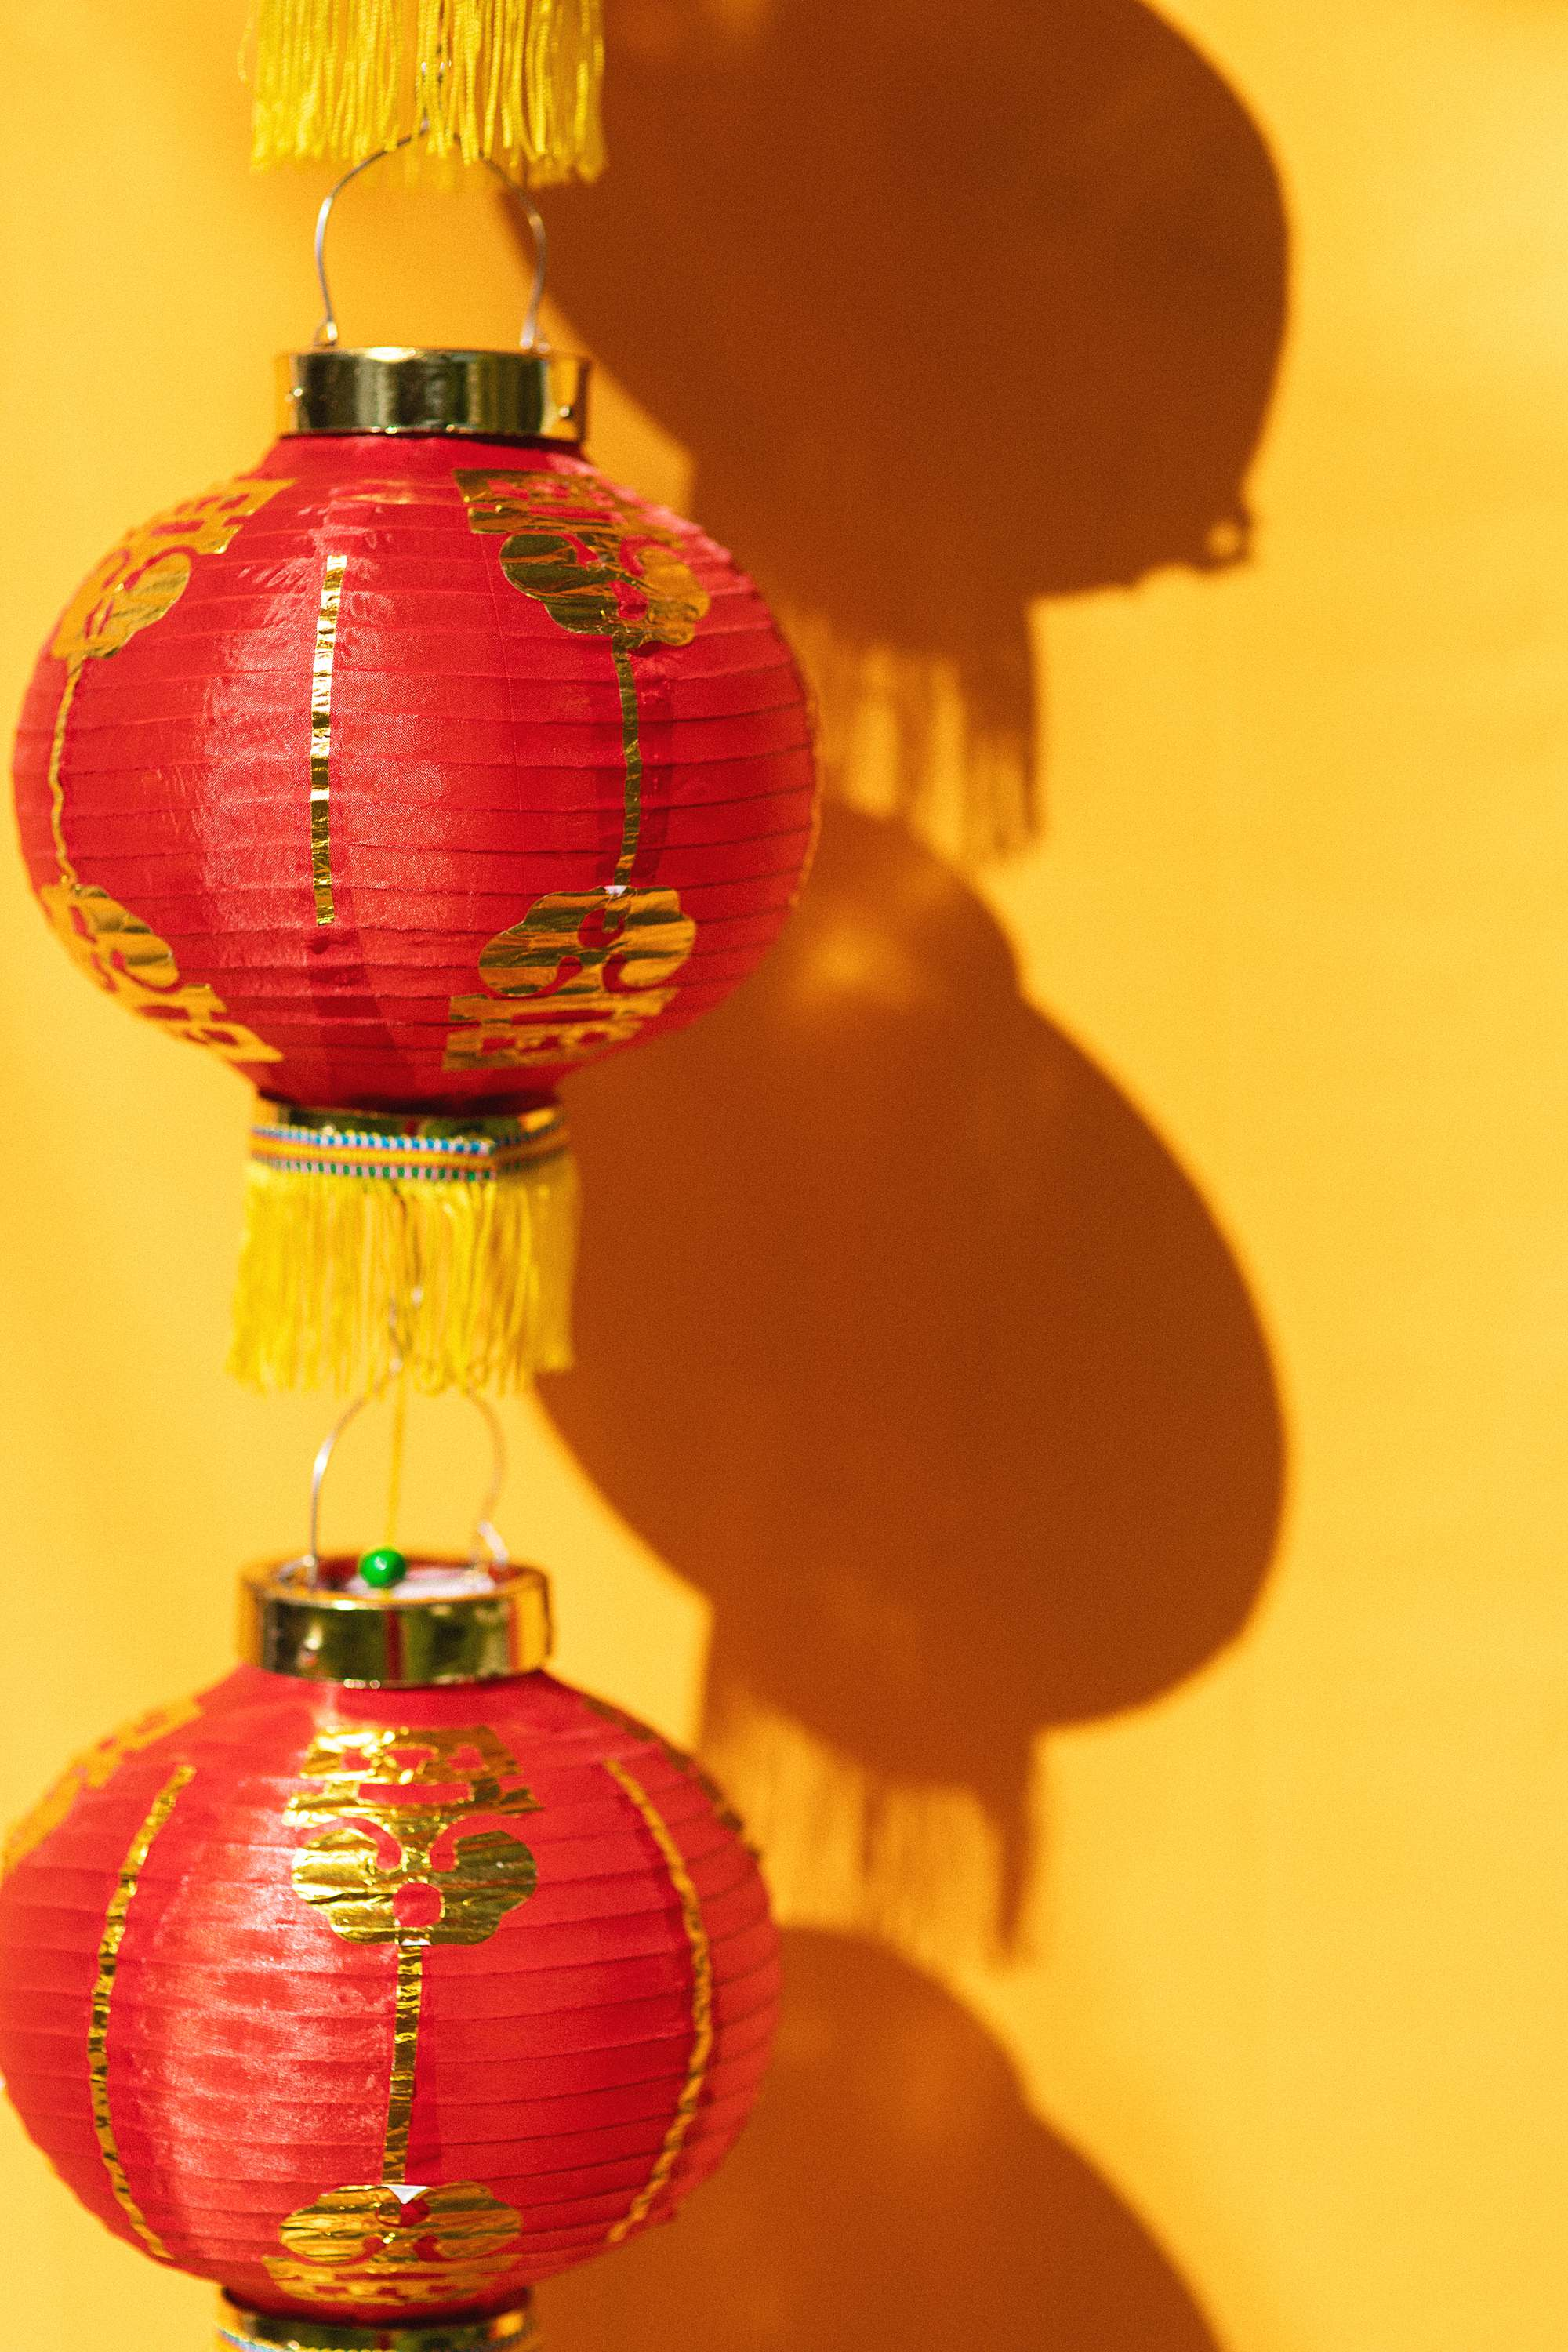 Lunar new year - red lantern on yellow backdrop with shadows Chinese New Year - Chinese New Year lunar new year outfit and festivities - growing up Asian American blog post - DianaElizabethblog.com (c) Diana Elizabeth Photography, LLC